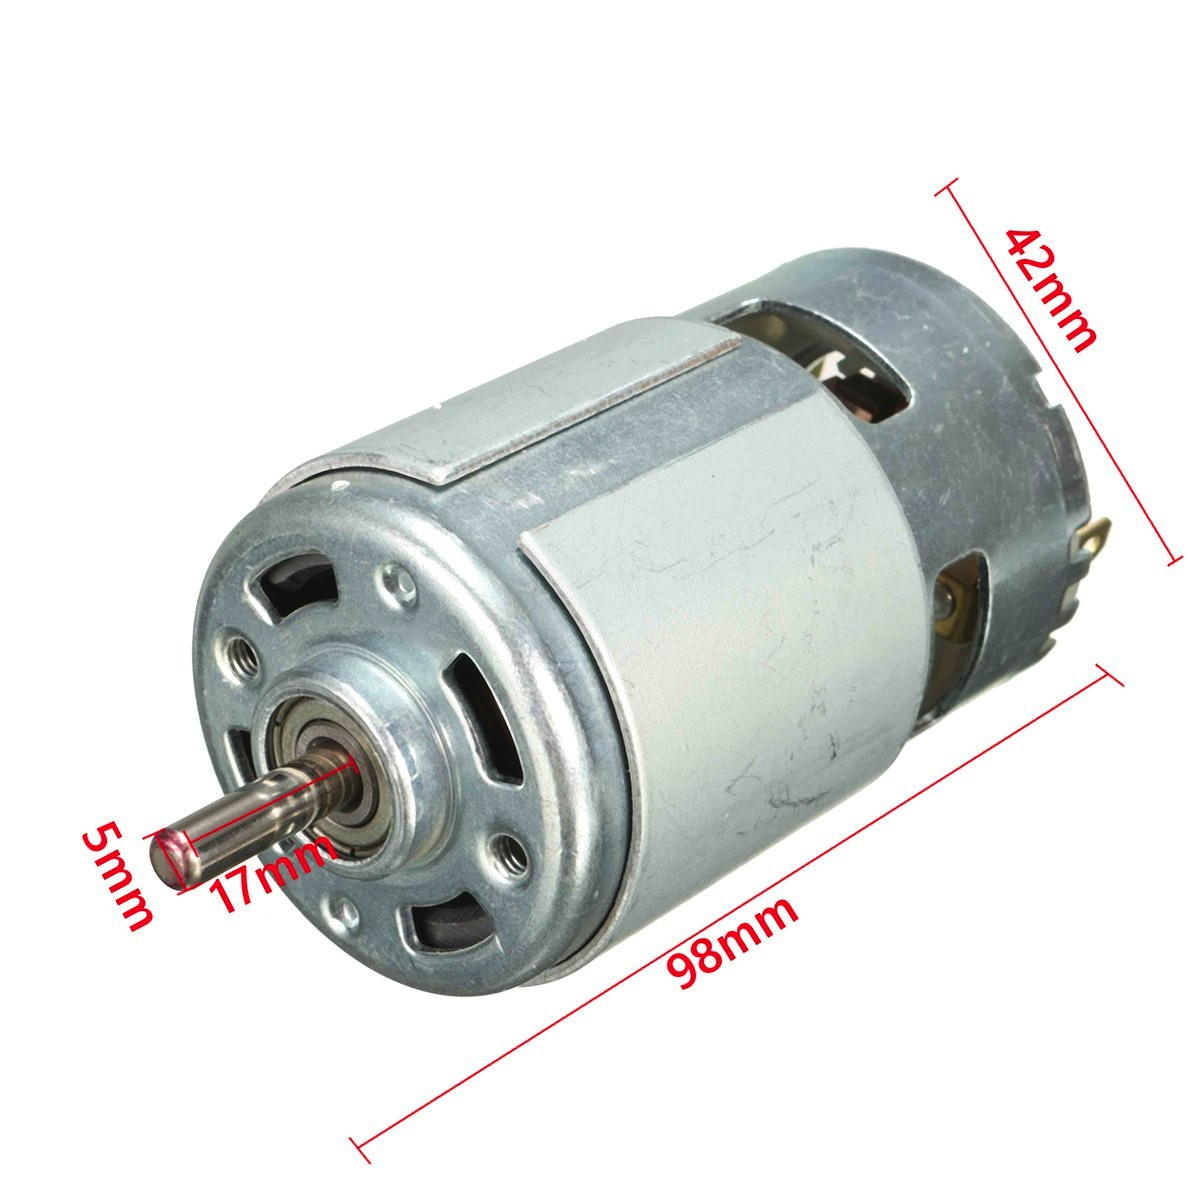 1Pcs 775 DC Motor 12V 13000~15000rpm High Speed Large Torque DC Motor Electric Tool Electric Machinery